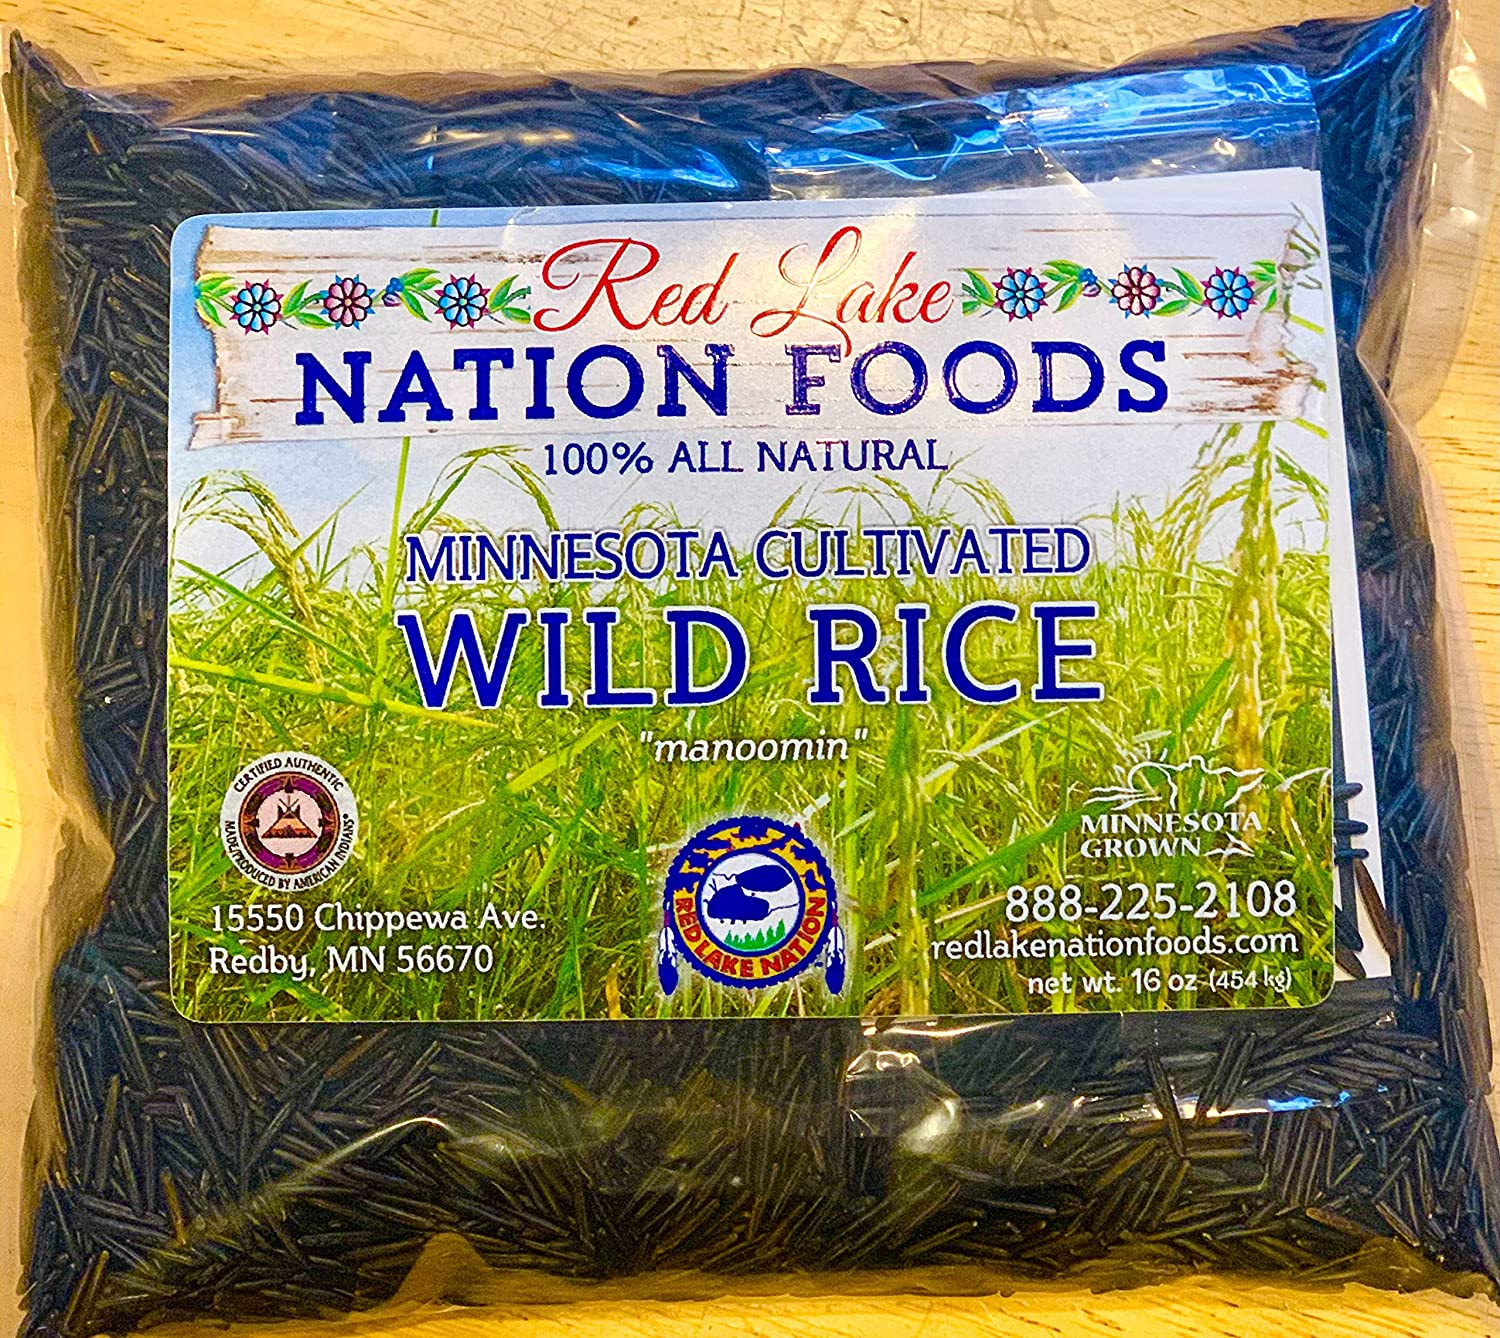 (GLUTEN FREE) Red Lake Nation 100% All Natural Minnesota Cultivated Wild Rice, ONE POUND